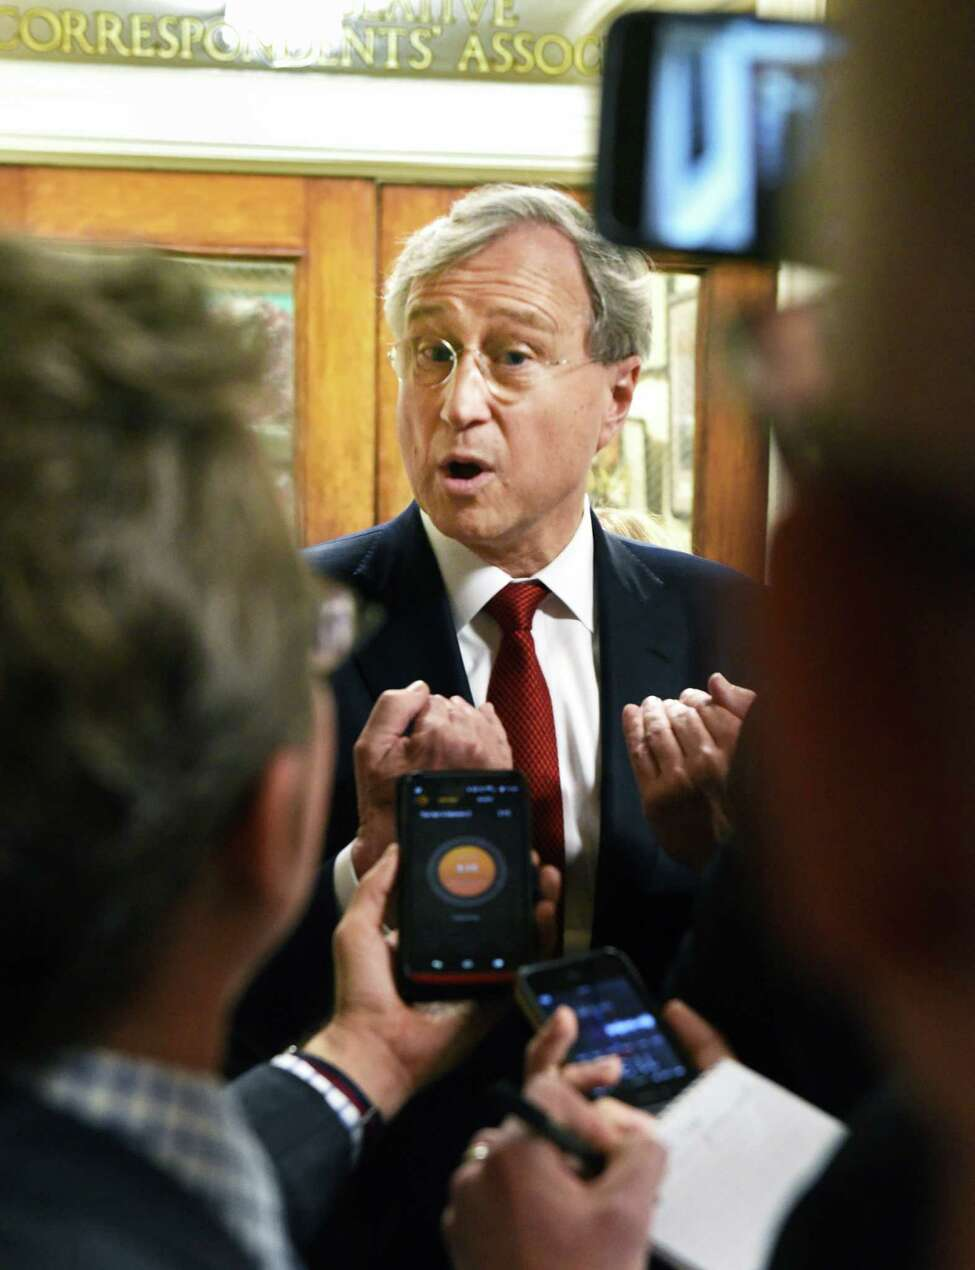 State GOP Chair Ed Cox speaks with reporters at the Capitol Tuesday April 4, 2017 in Albany, NY. (John Carl D'Annibale / Times Union)